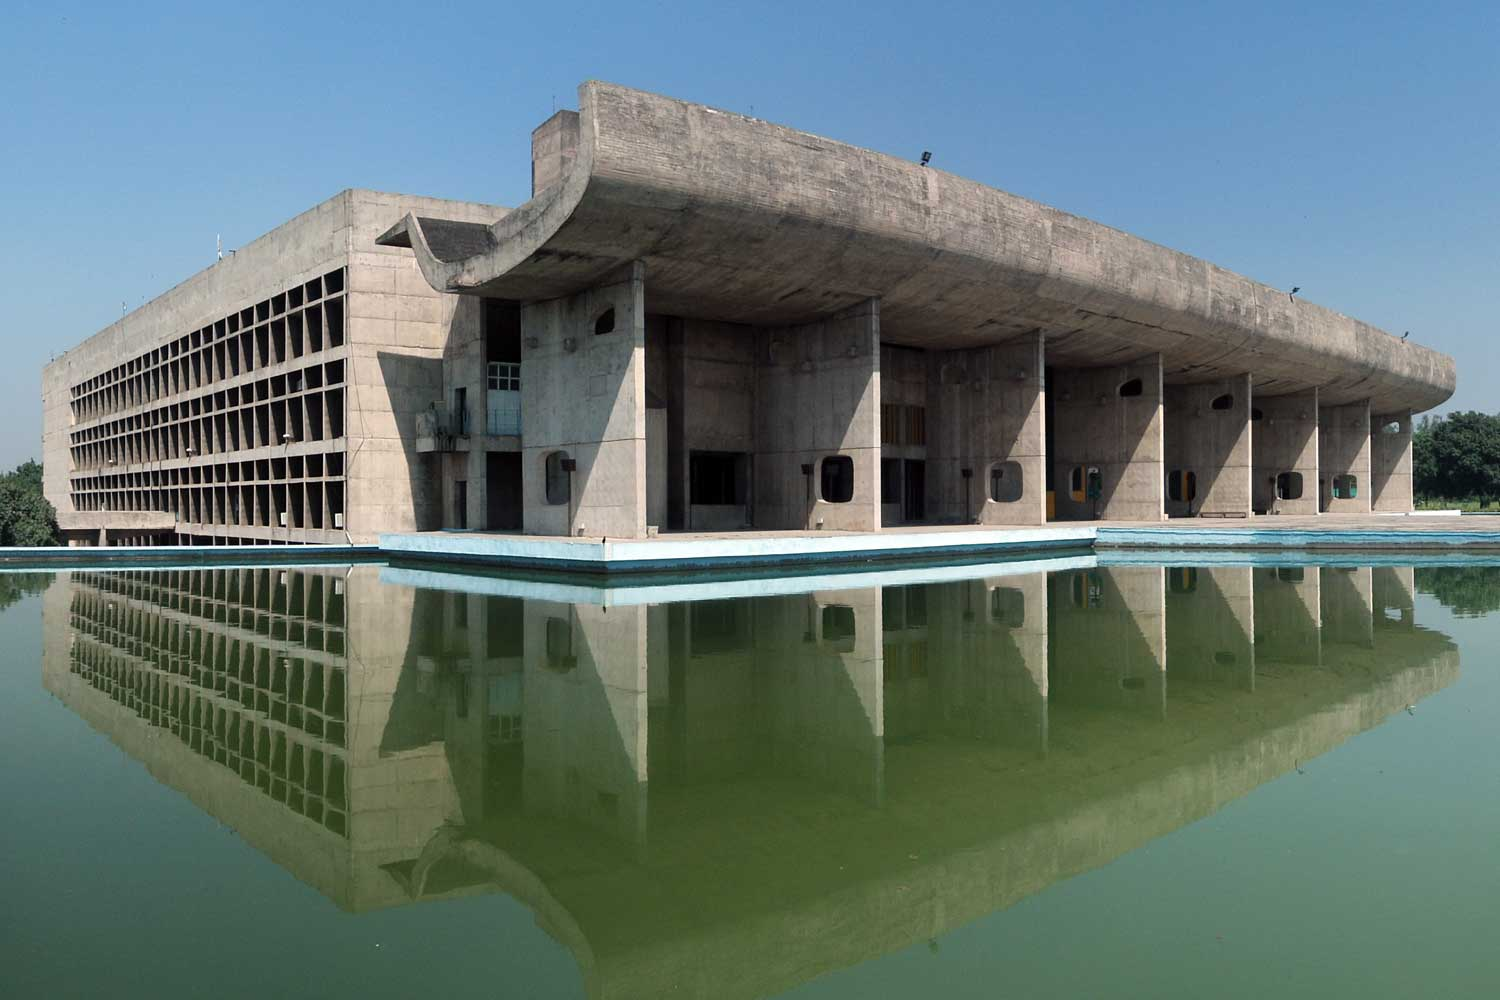 Palace of Assembly in Chandigarh, India; designed by Le Corbusier